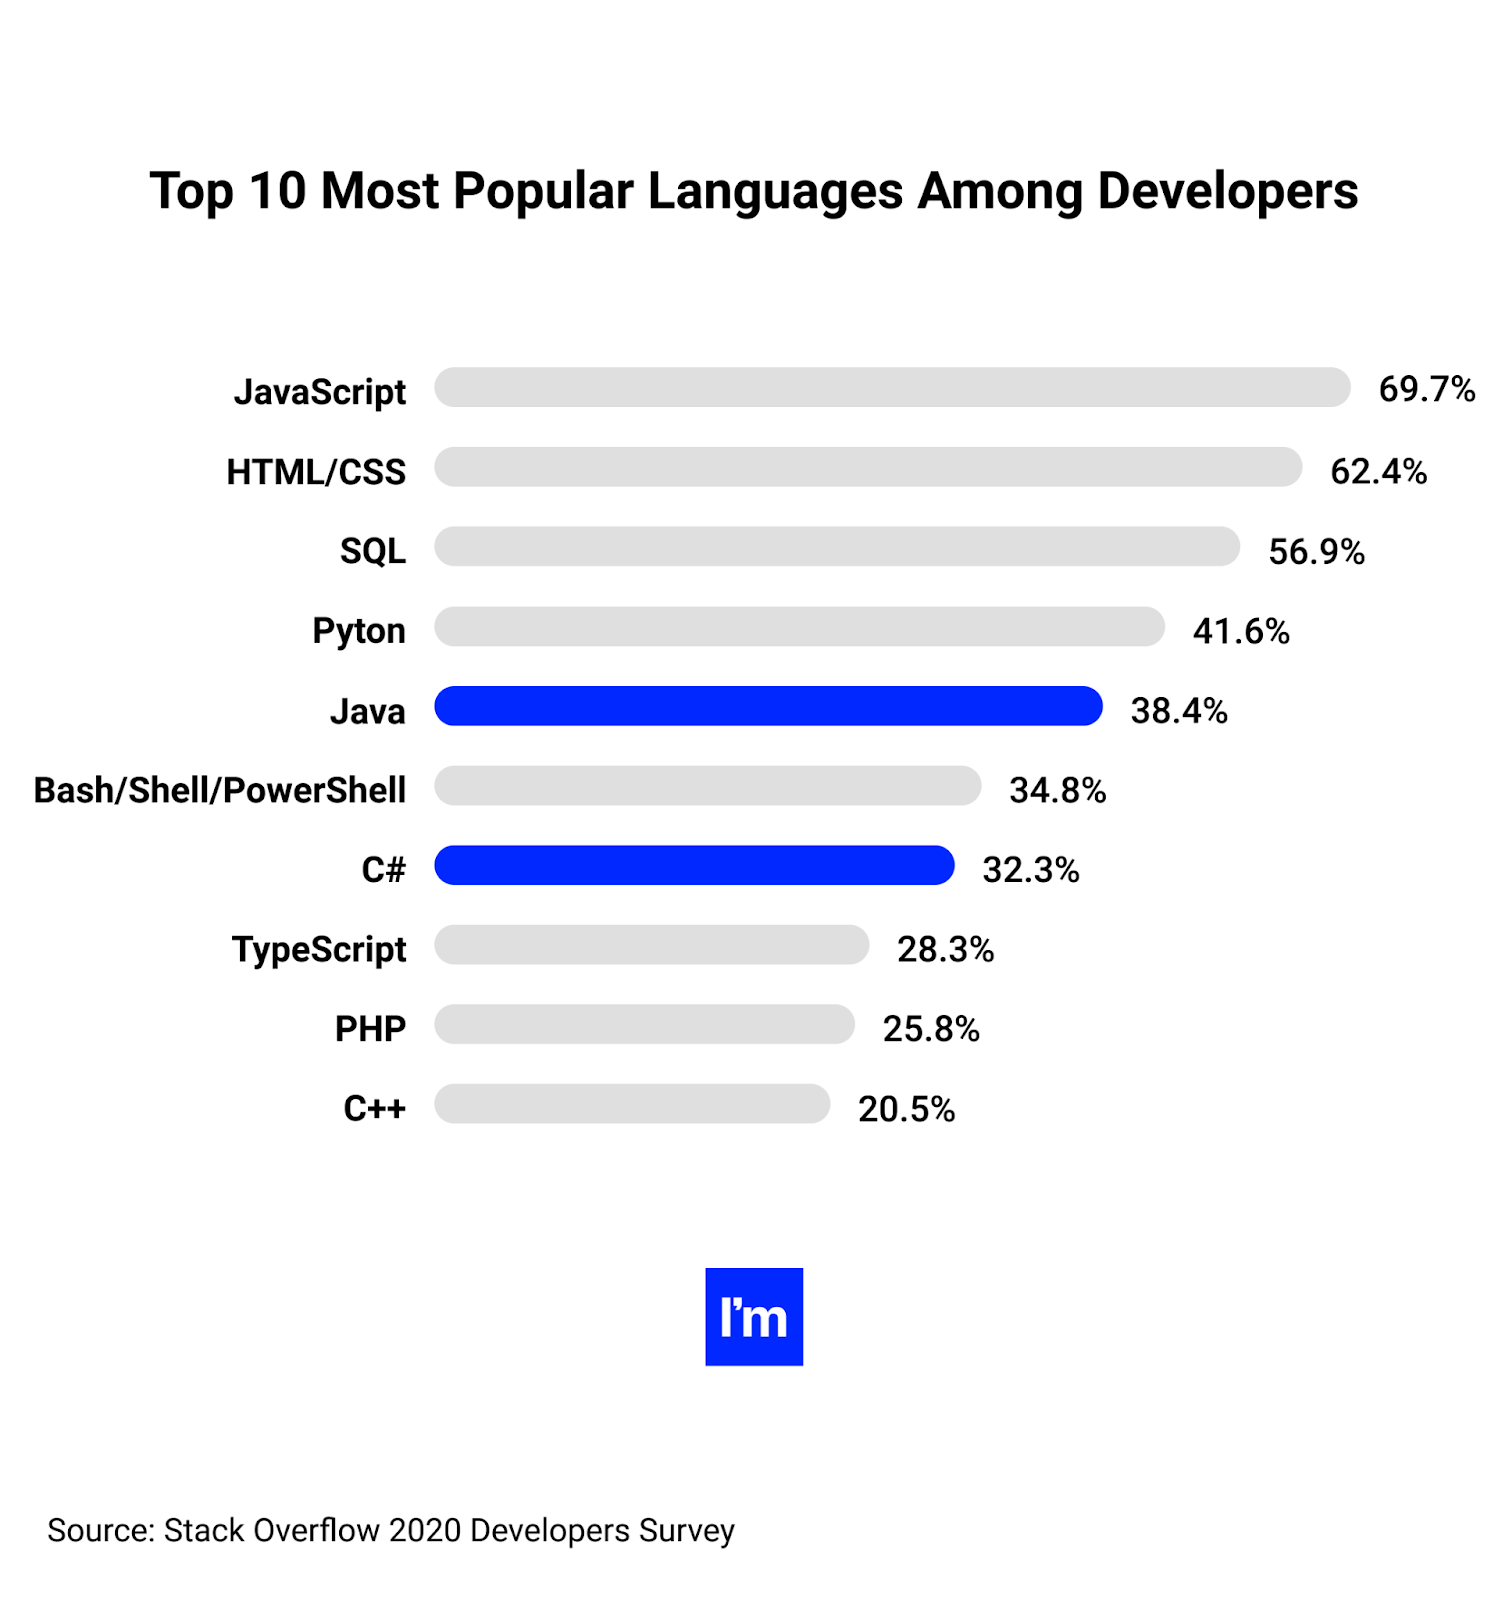 Top 10 Most Popular Programming Languages Among Developers